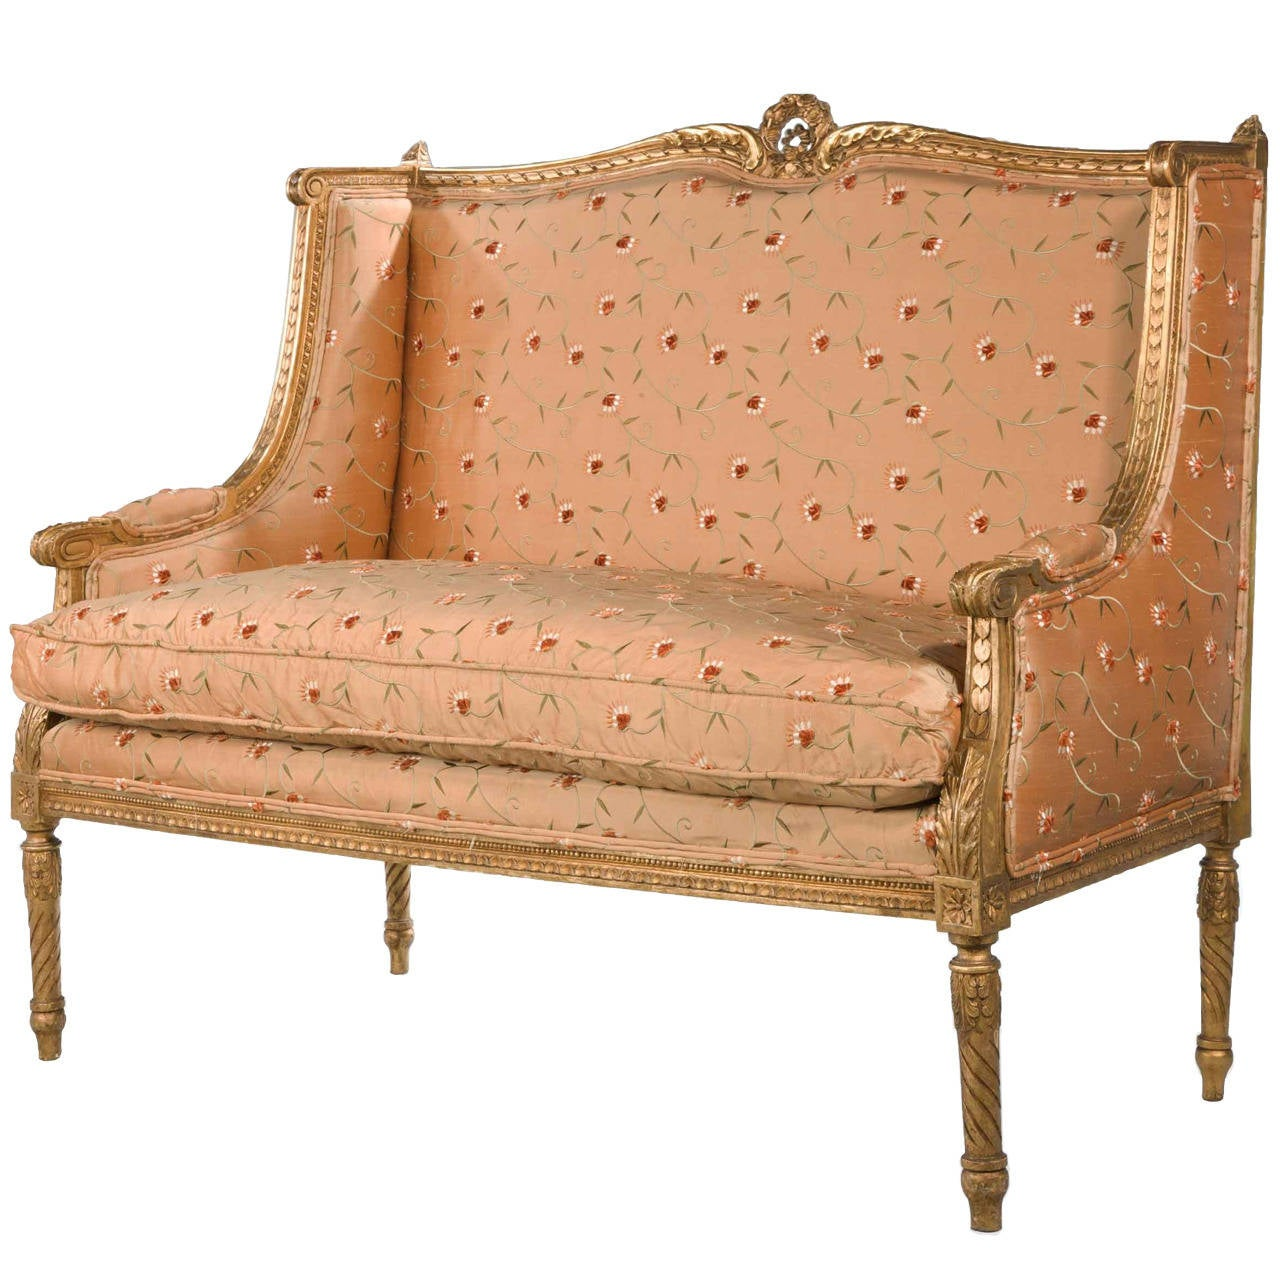 late 19th century french giltwood canape for sale at 1stdibs. Black Bedroom Furniture Sets. Home Design Ideas